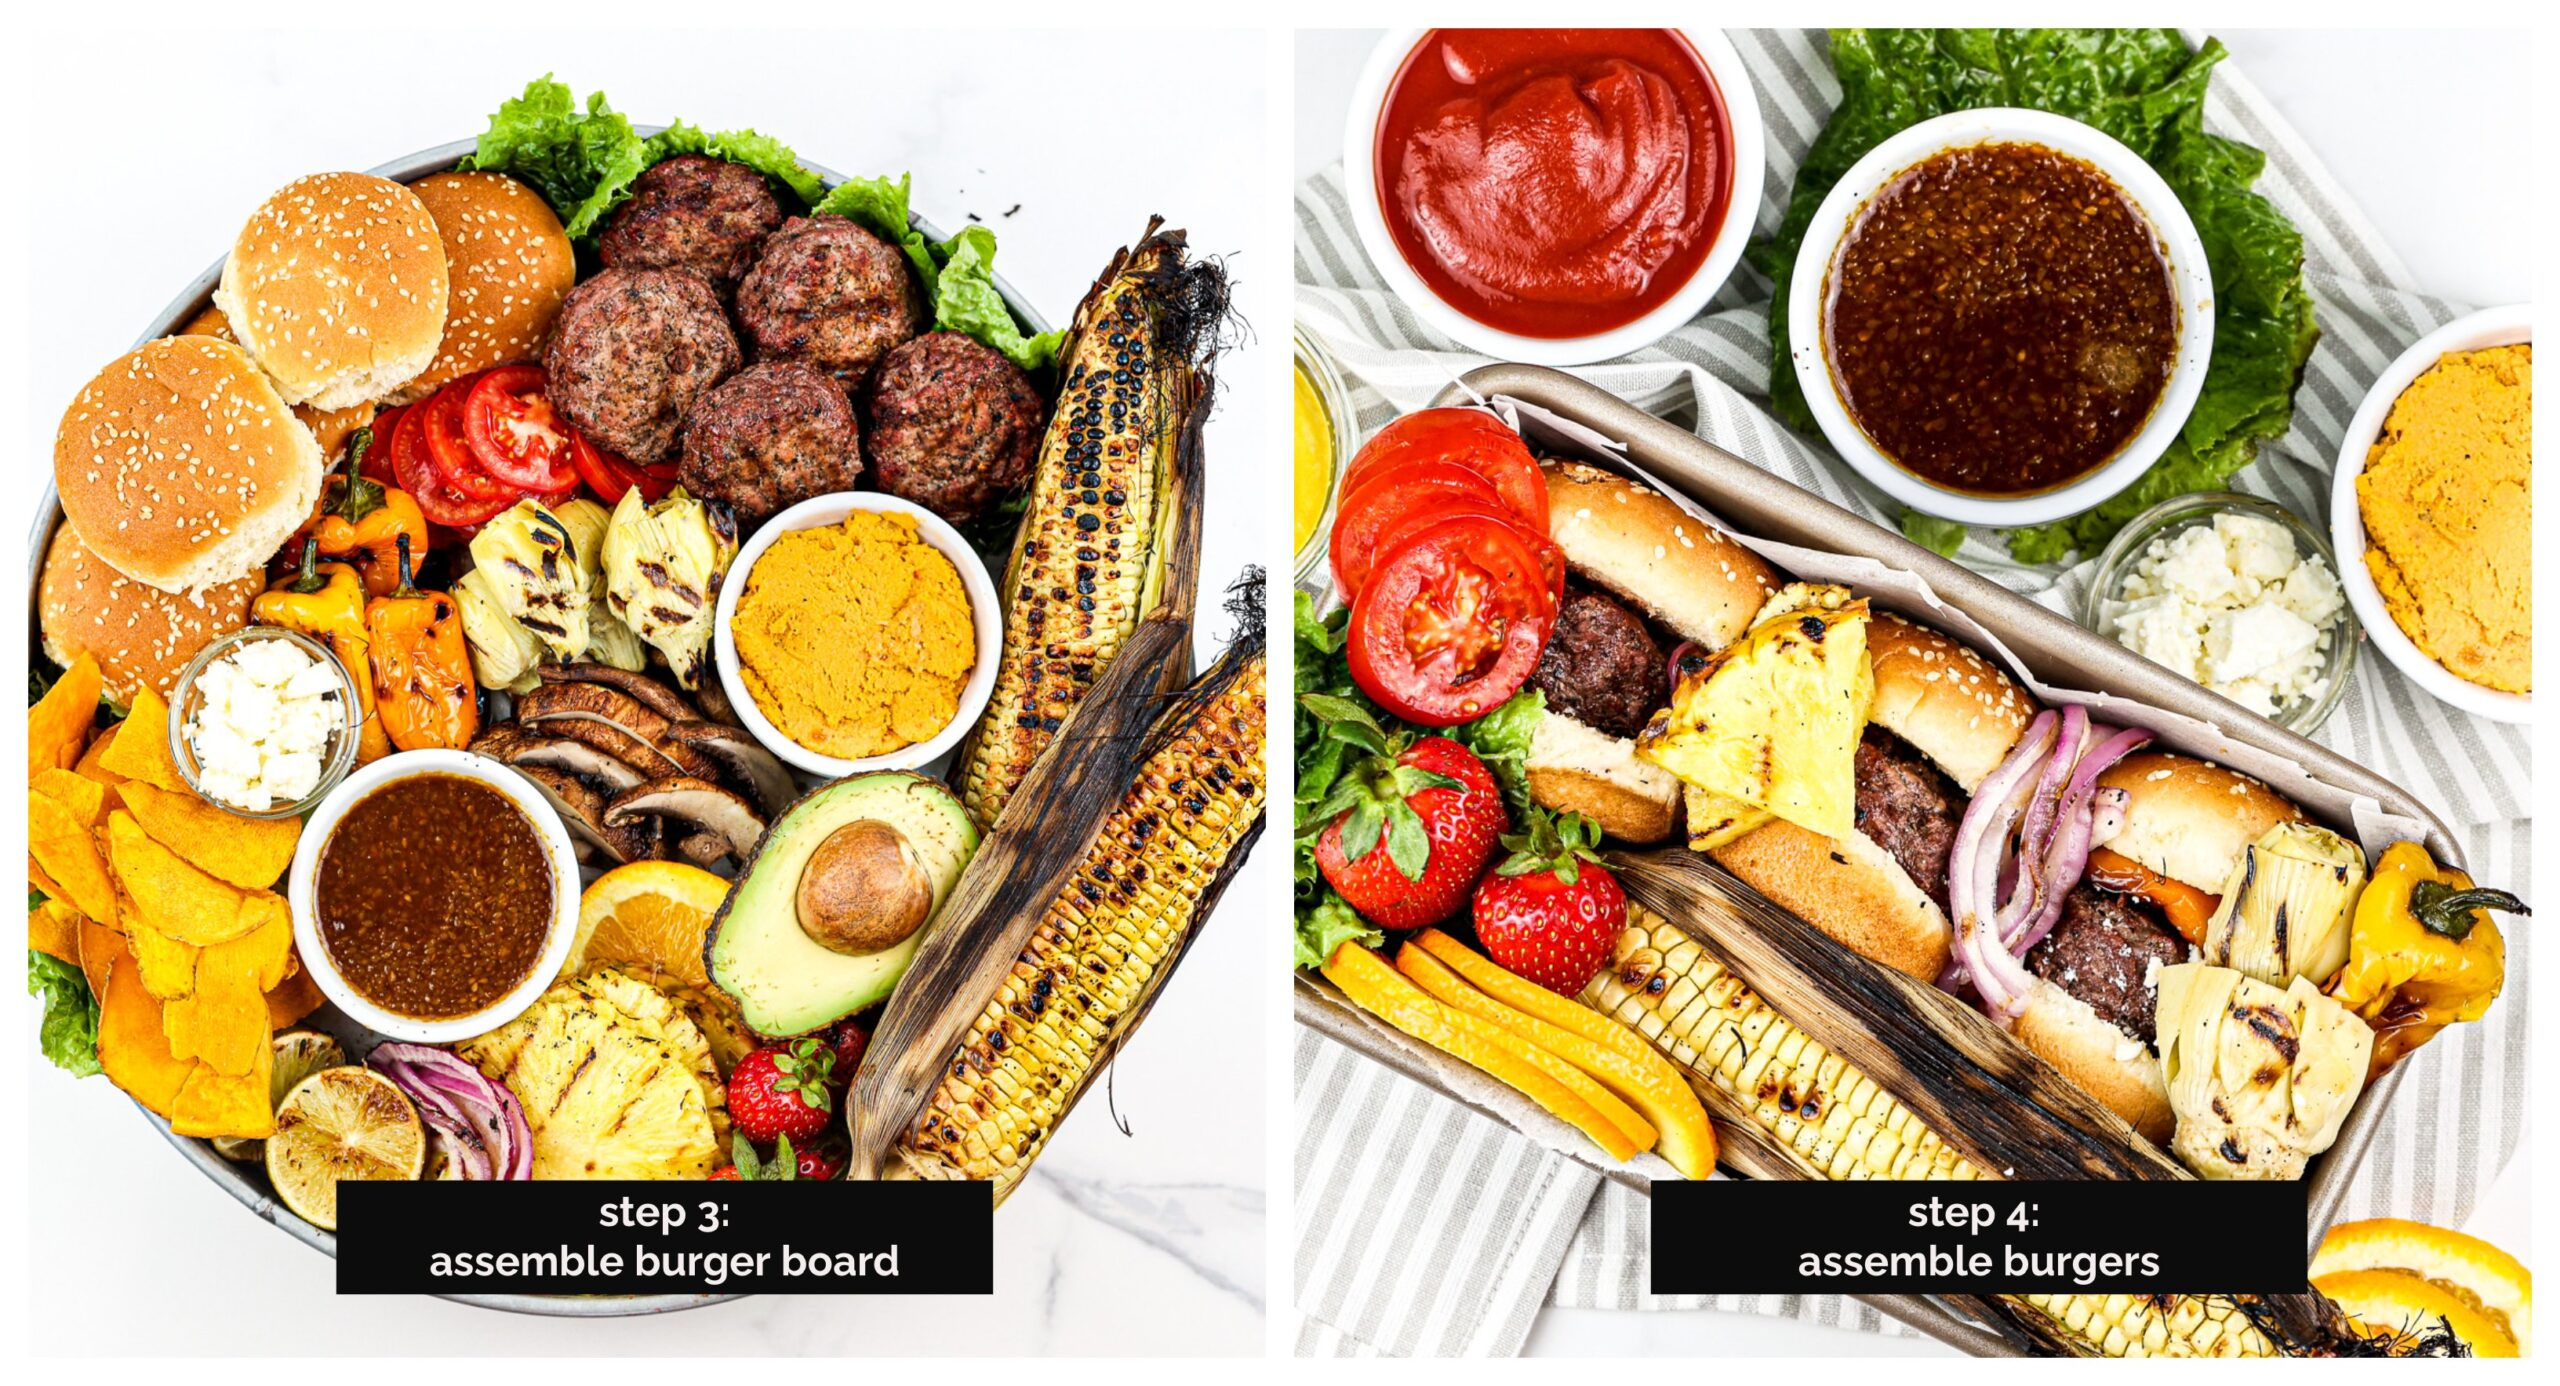 Two picture collage of the beef burger board then burgers made in a small container.